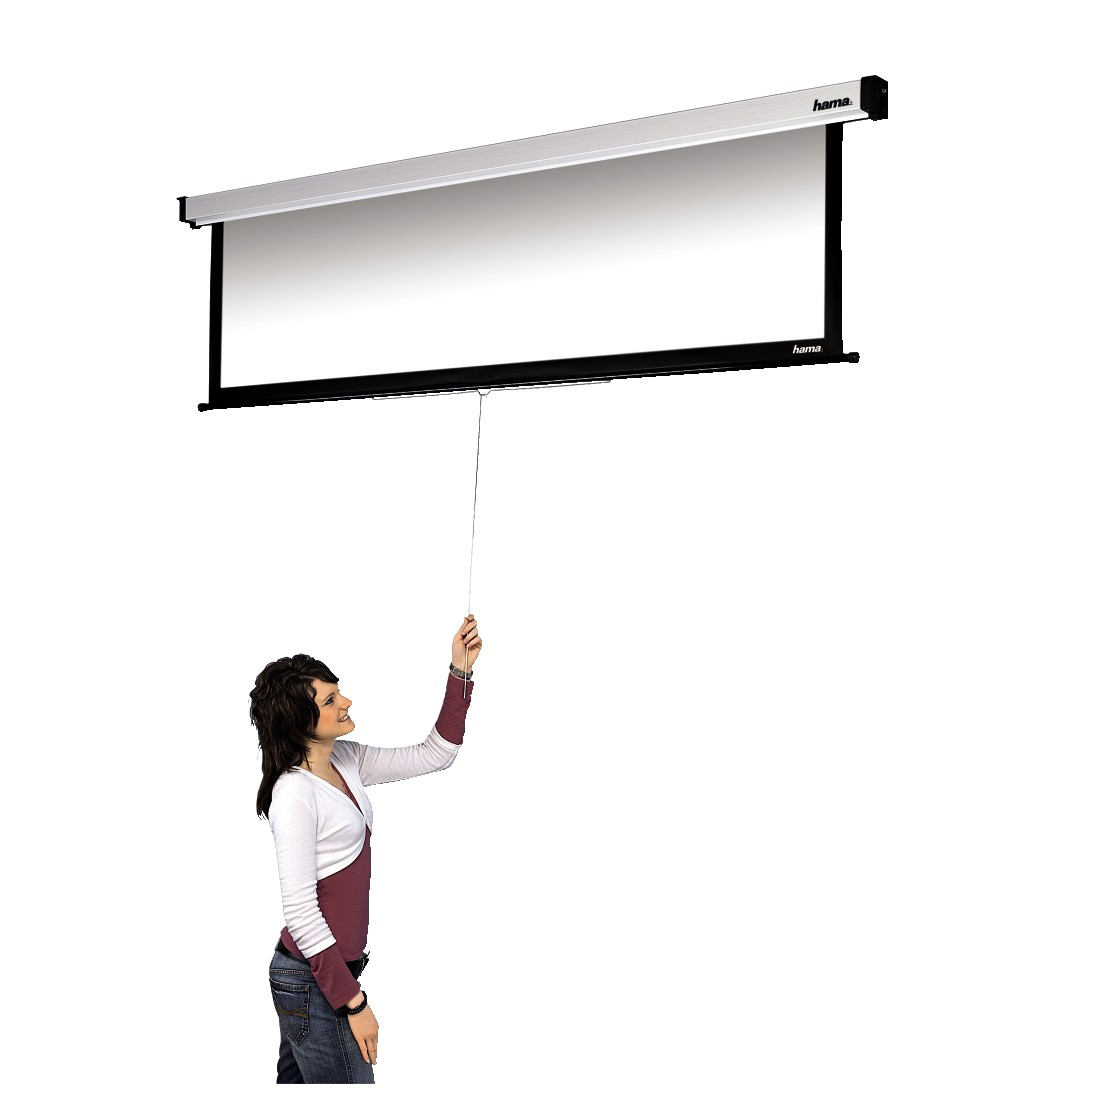 awx2 High-Res Appliance 2 - Hama, Roller Projection Screen, 180 x 160 cm, 4:3